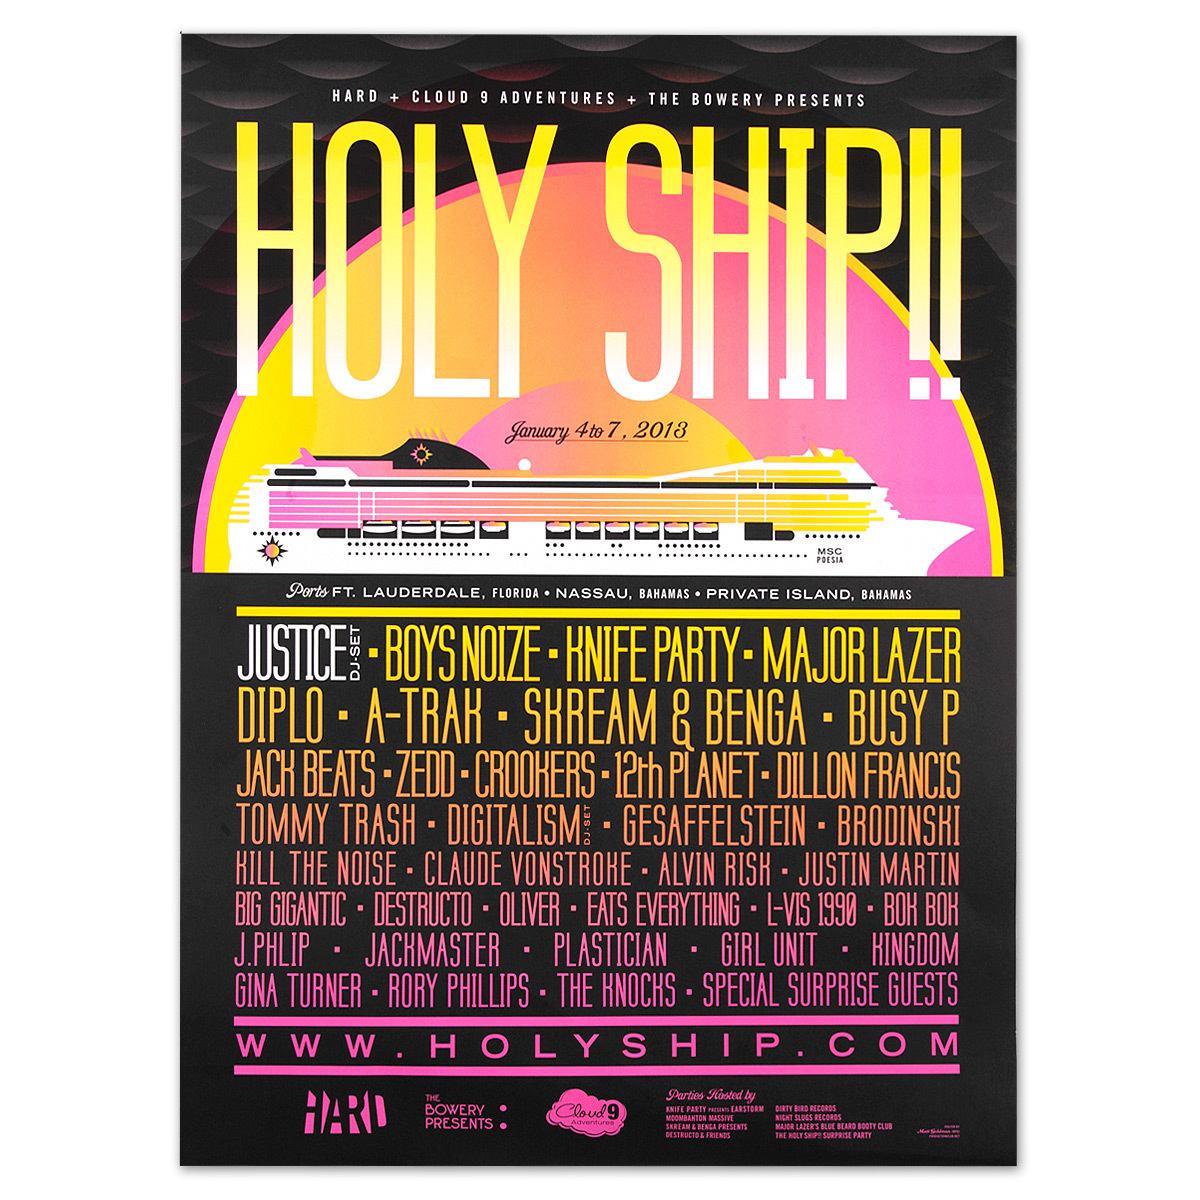 Holy Ship!! 2013 Poster